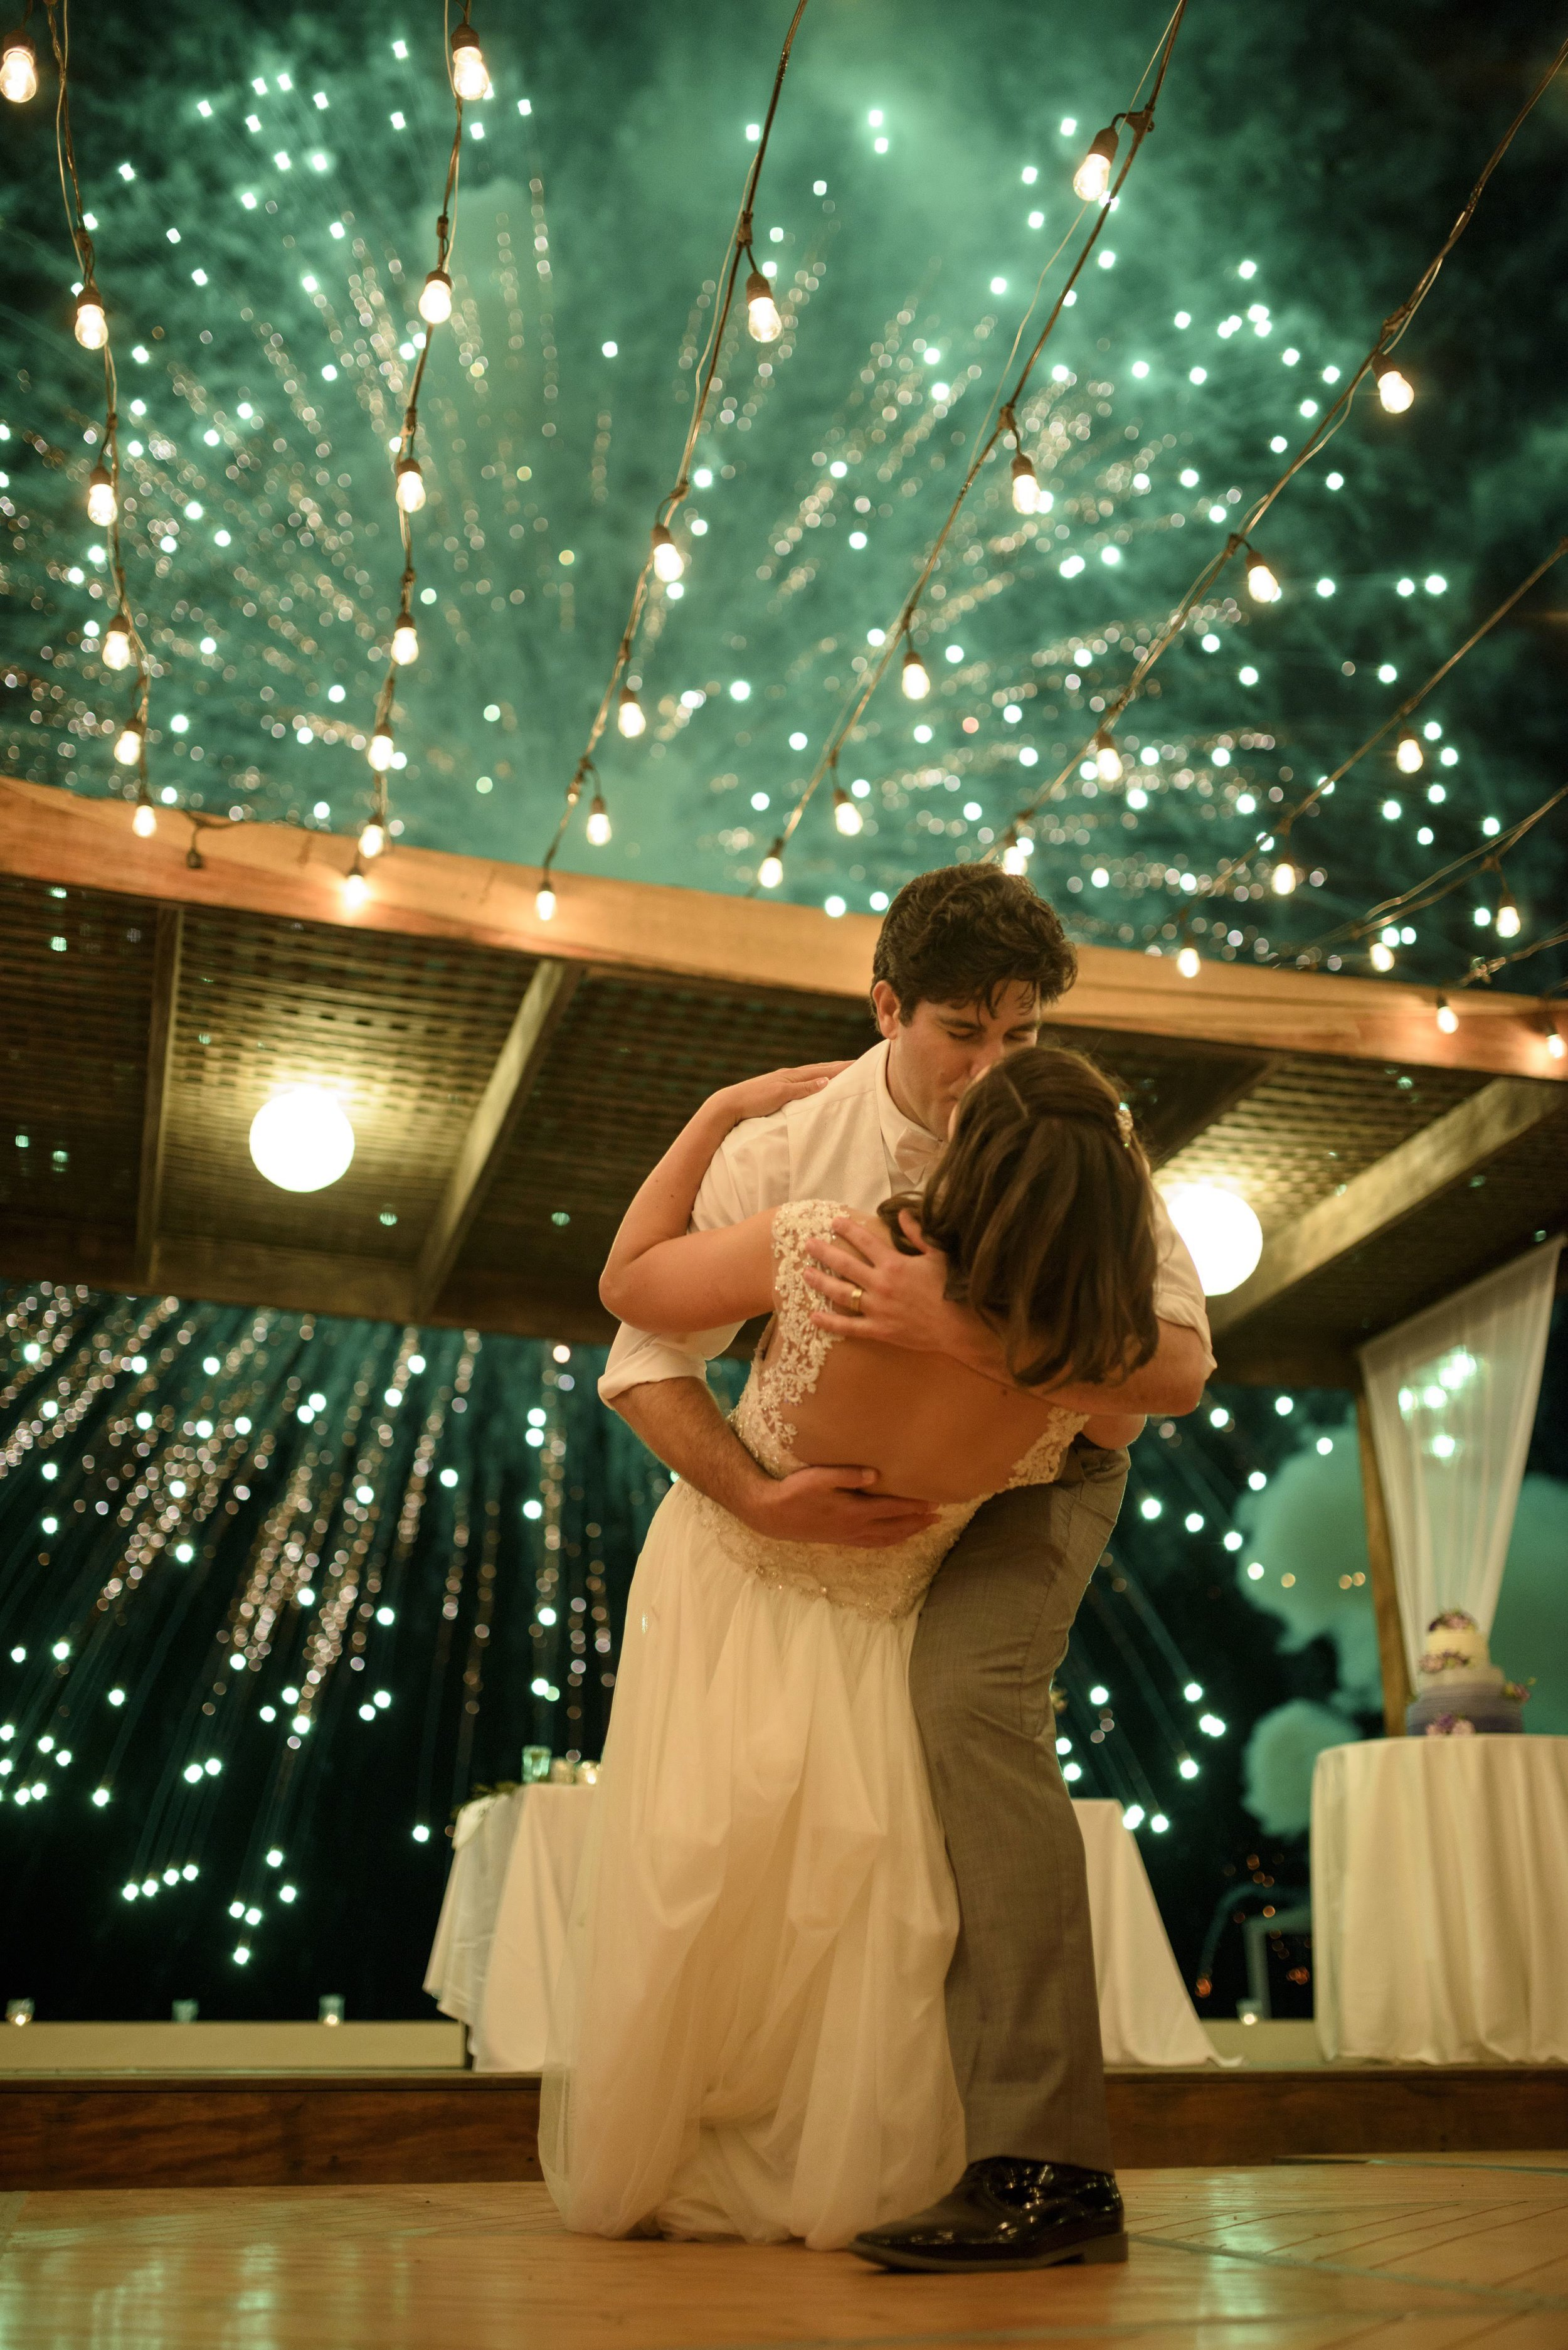 Bride and Groom Kiss Underneath the Fireworks at Mexico Destination Wedding